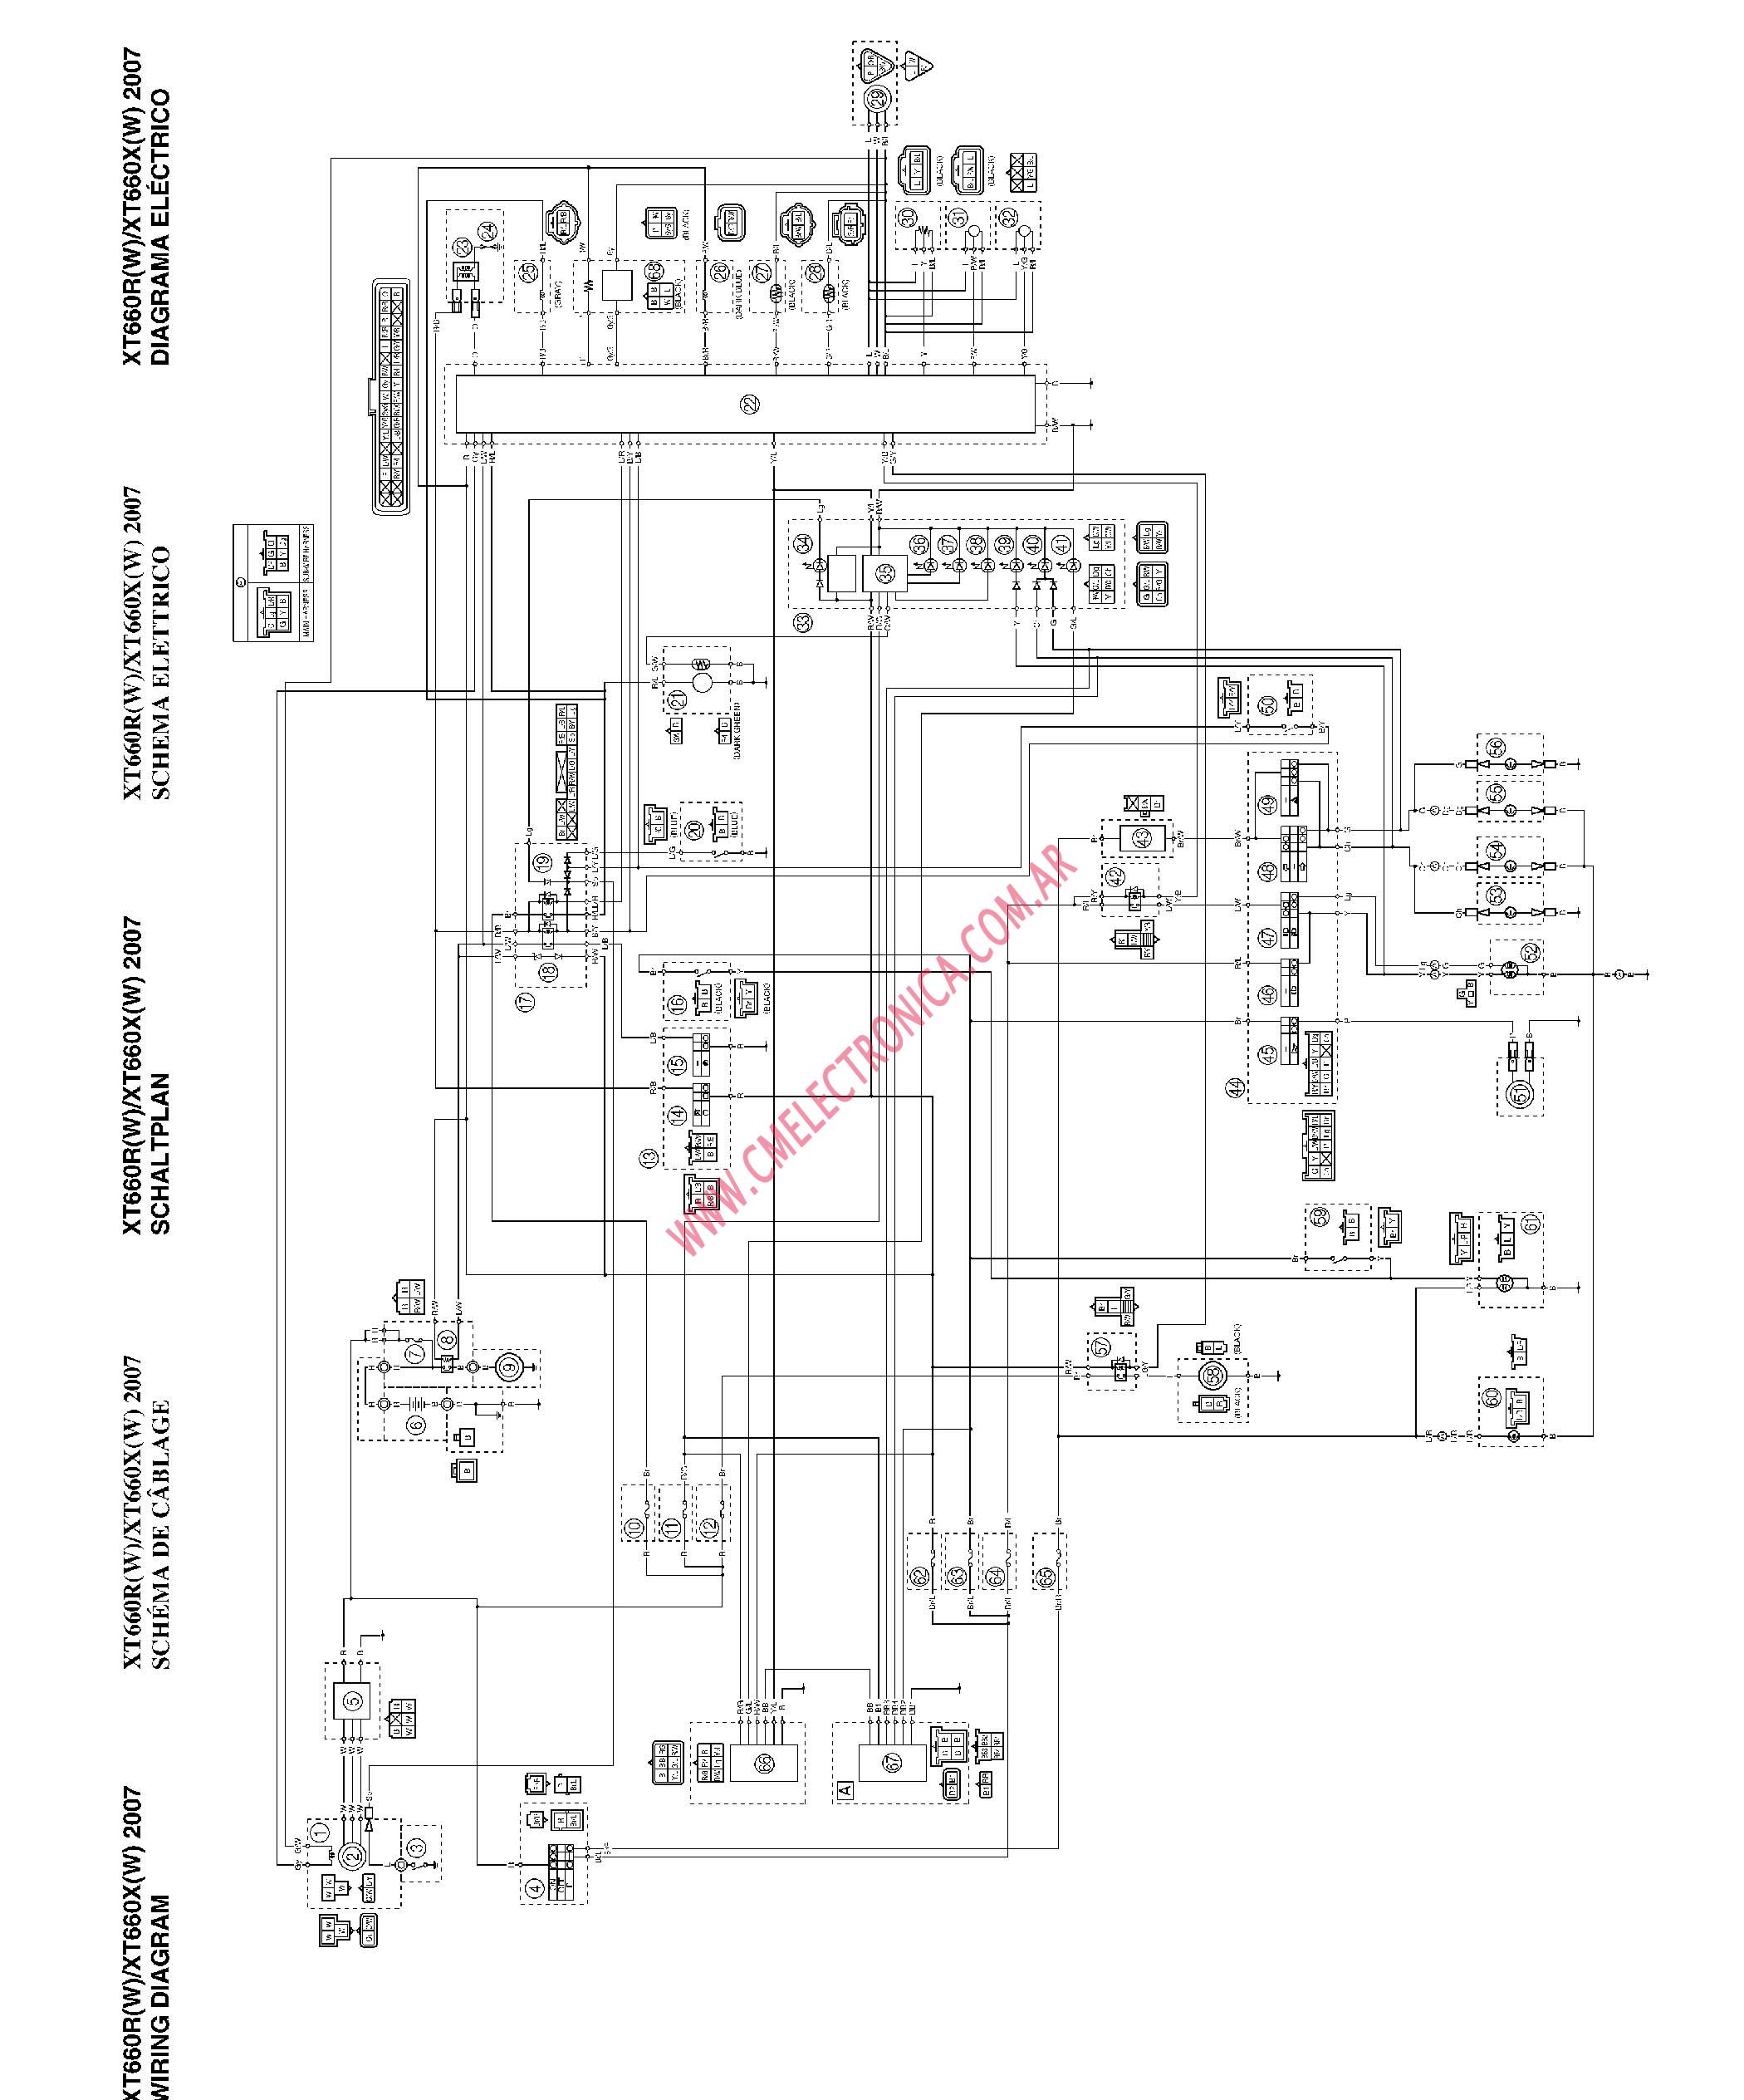 2007 Suzuki King Quad 700 Wiring Diagram : 40 Wiring